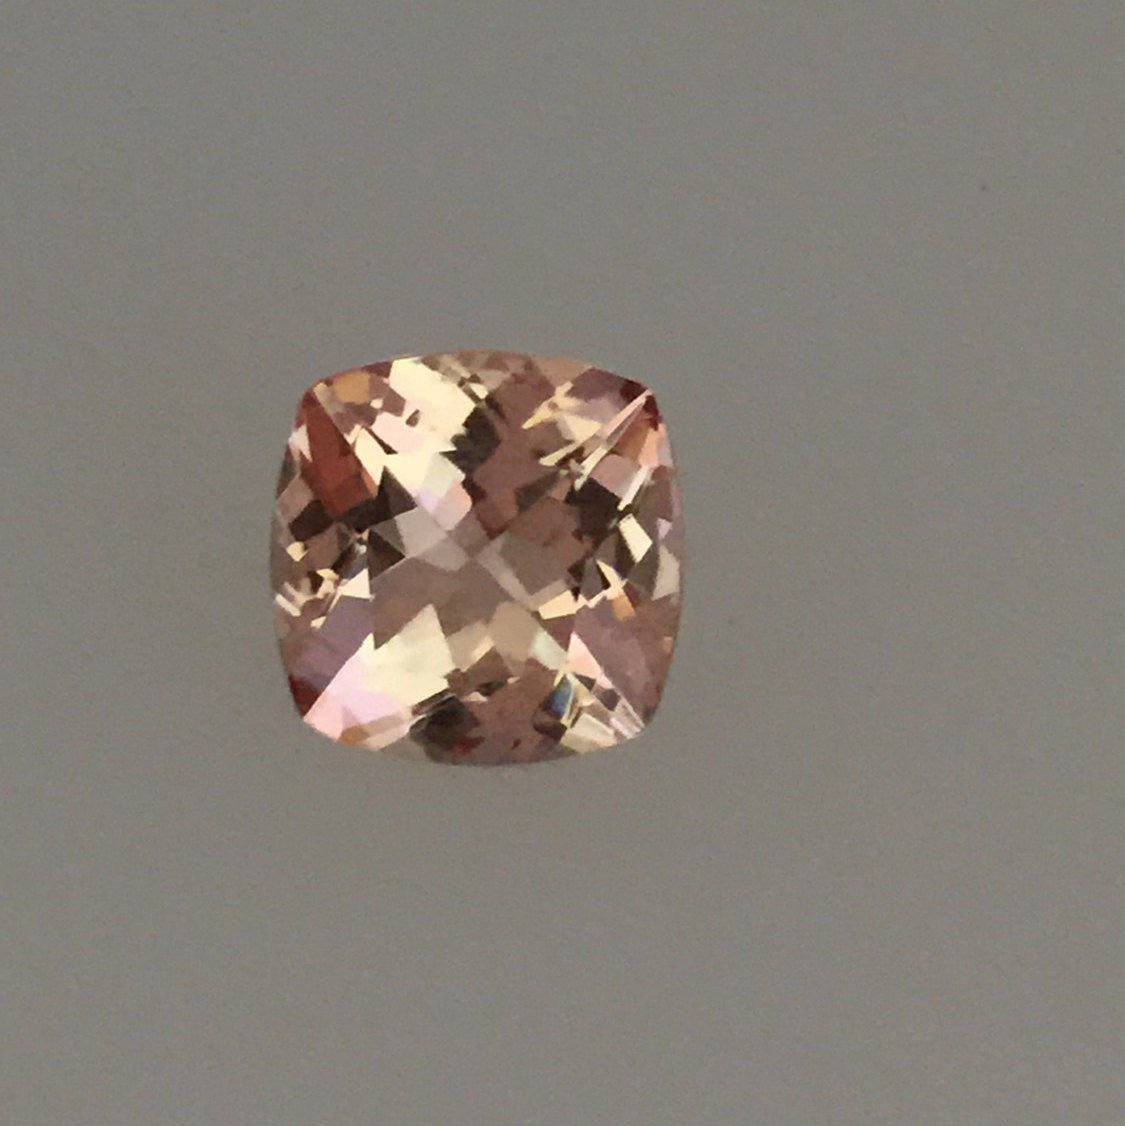 Natural Morganite 5mm Cushion  Faceted Cut 10 Pieces Top Quality Peach Color Loose Gemstone